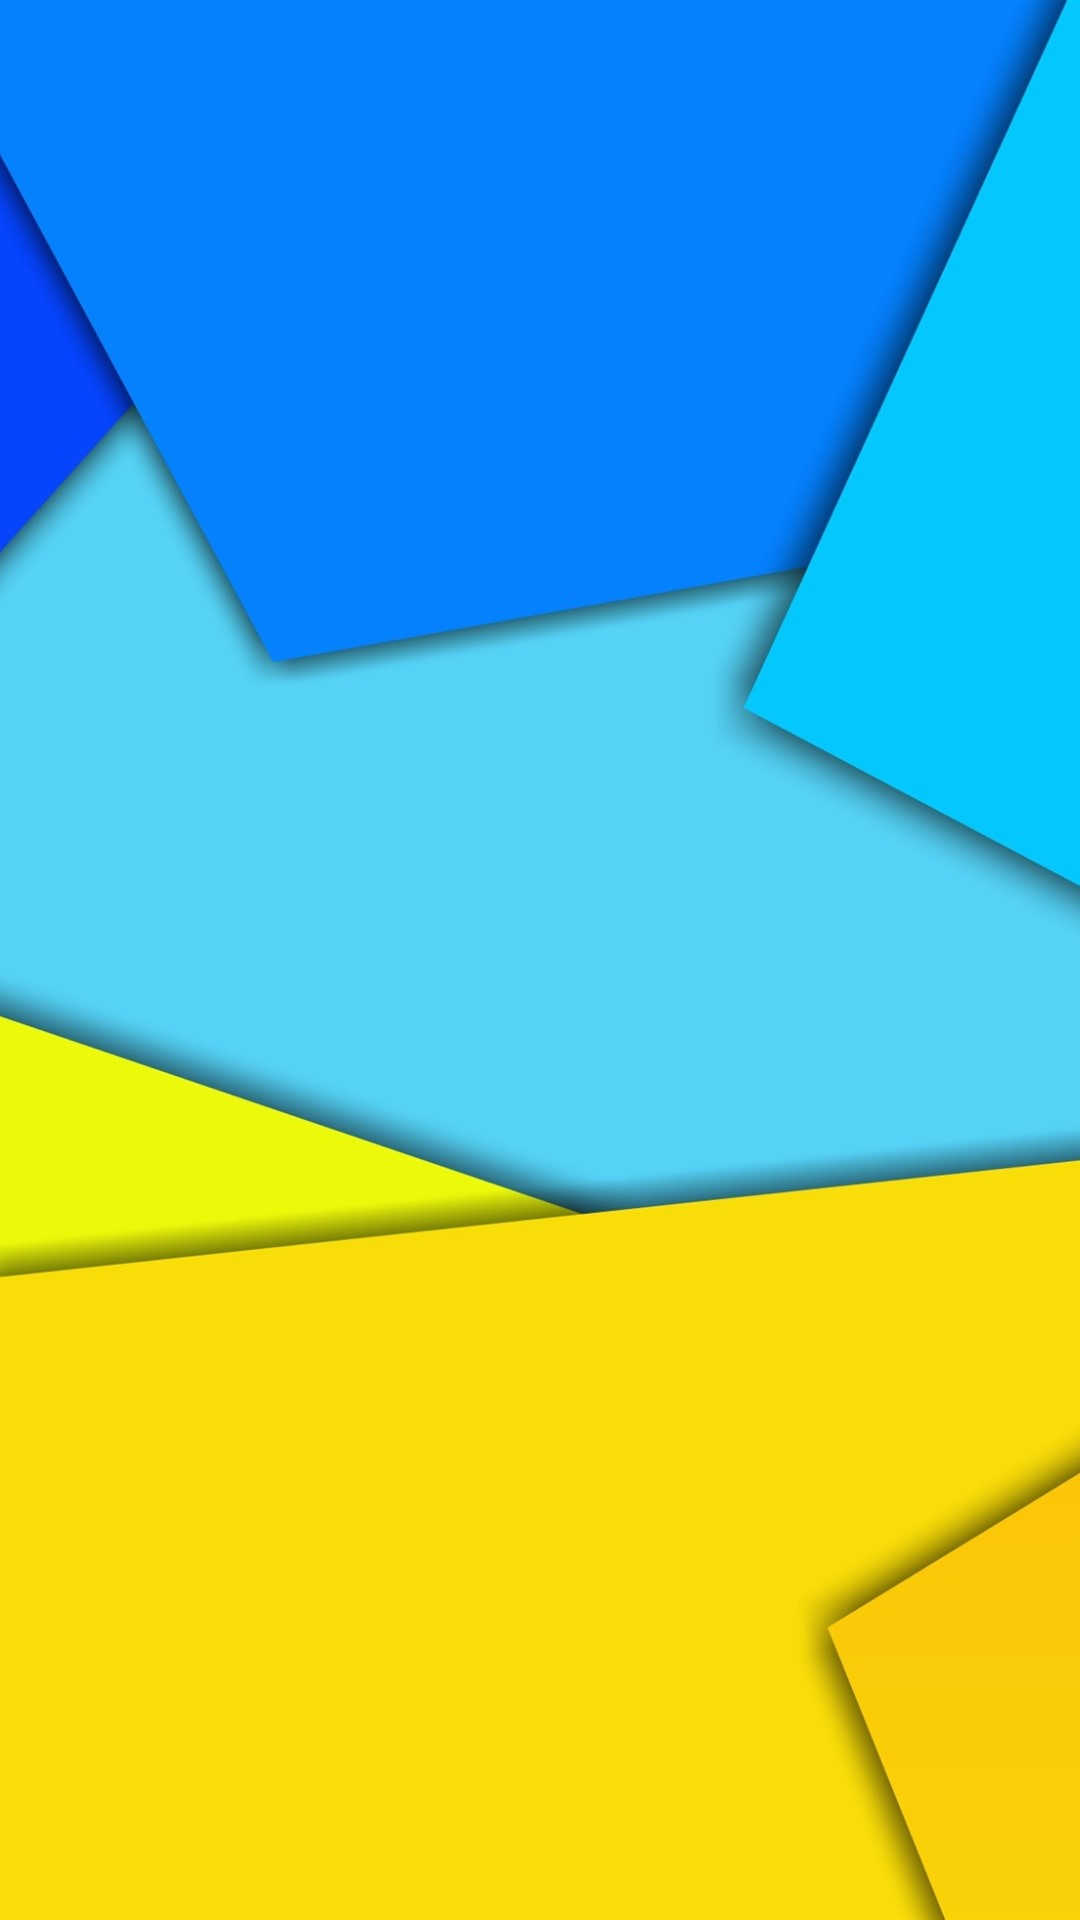 Iphone Wallpaper Yellow And Blue Geometric Figure Blue And Yellow Iphone 1080x1920 Wallpaper Teahub Io